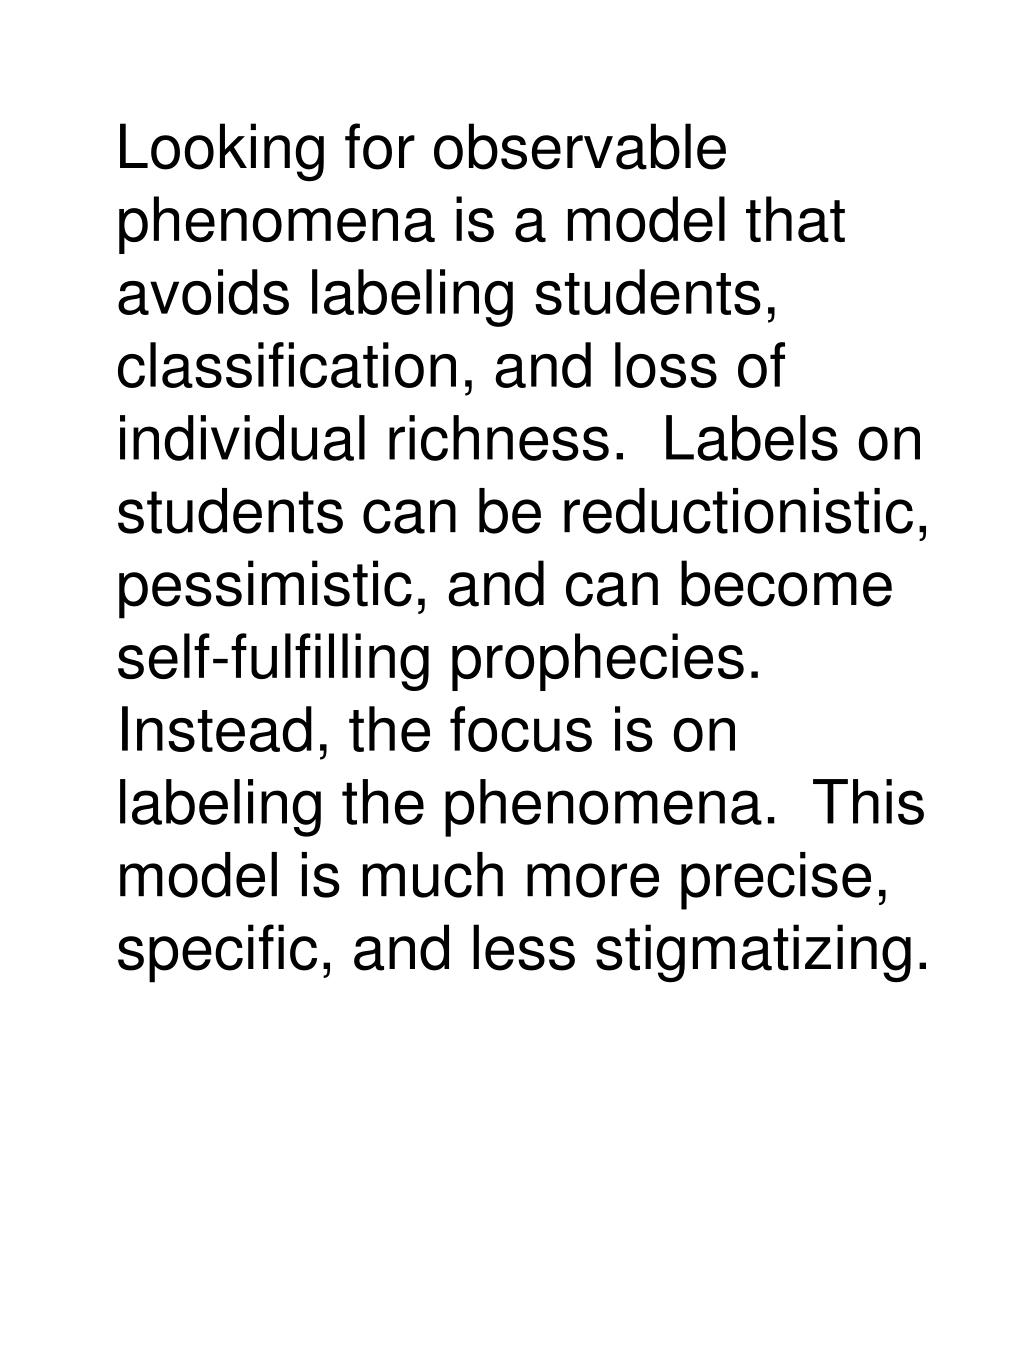 Looking for observable phenomena is a model that avoids labeling students, classification, and loss of individual richness.  Labels on students can be reductionistic, pessimistic, and can become self-fulfilling prophecies.  Instead, the focus is on labeling the phenomena.  This model is much more precise, specific, and less stigmatizing.